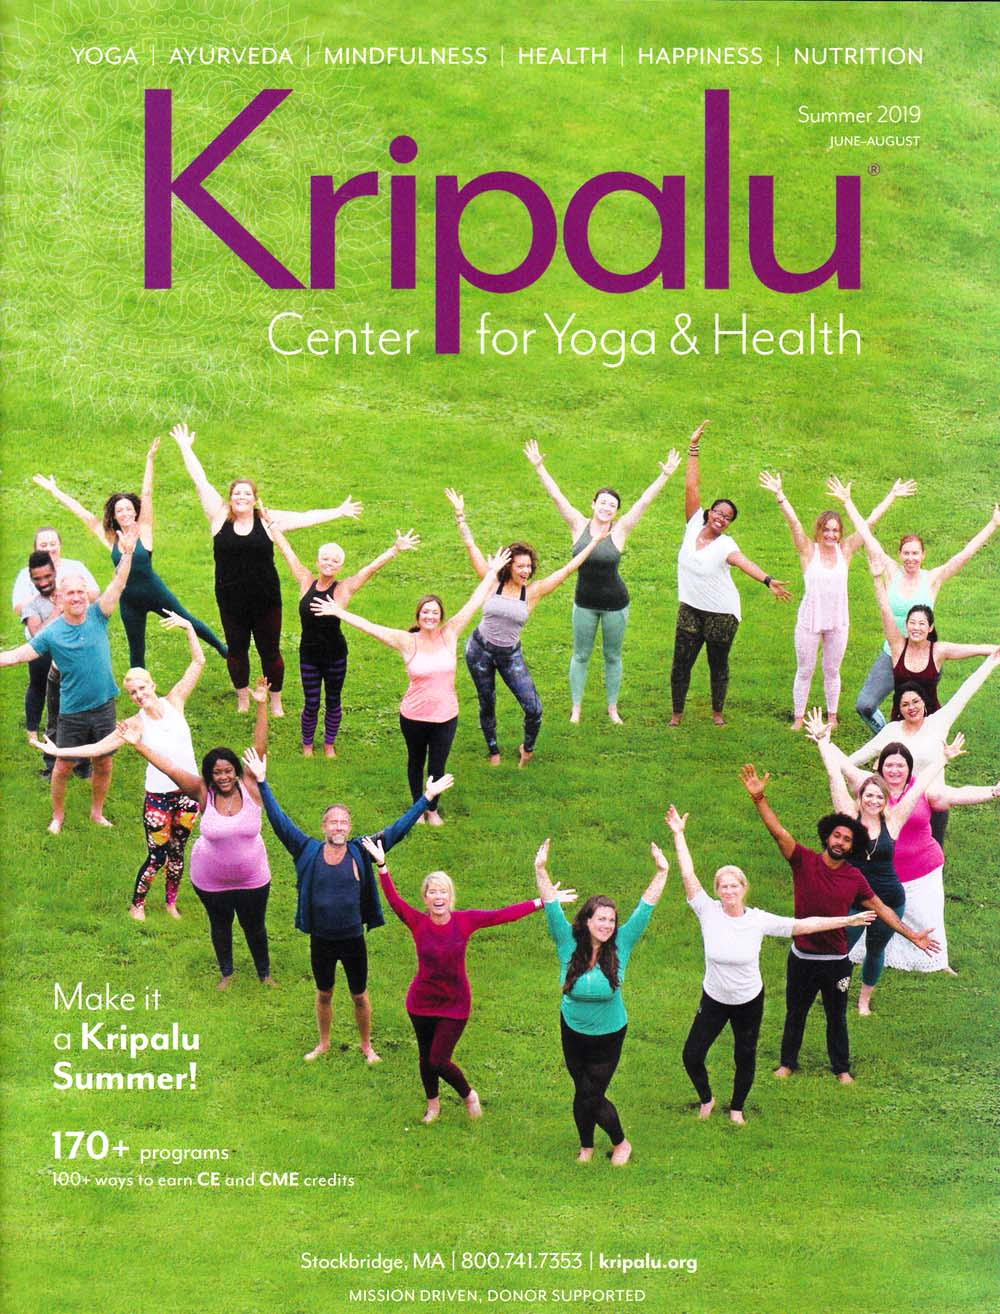 Kripalu Center for Yoga & Health Front Brochure Cover